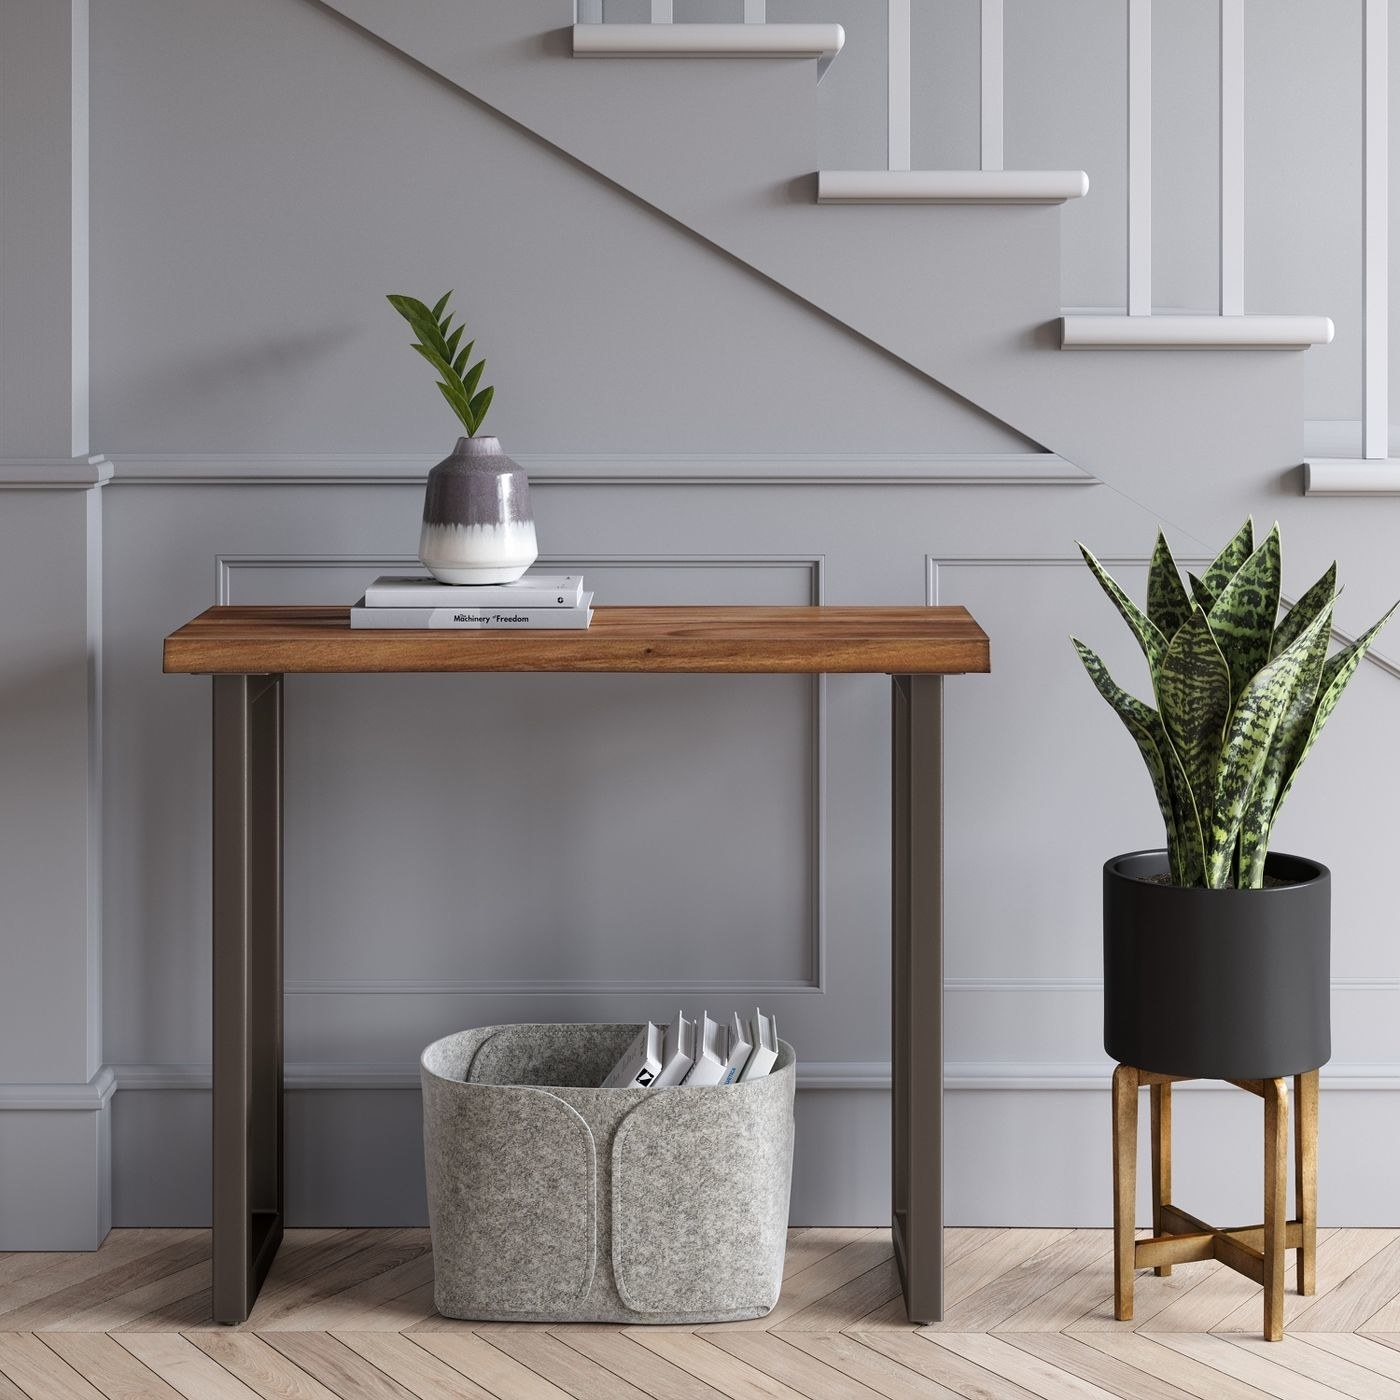 wood console table with metal legs against a wall with storage basket underneath and plant on top